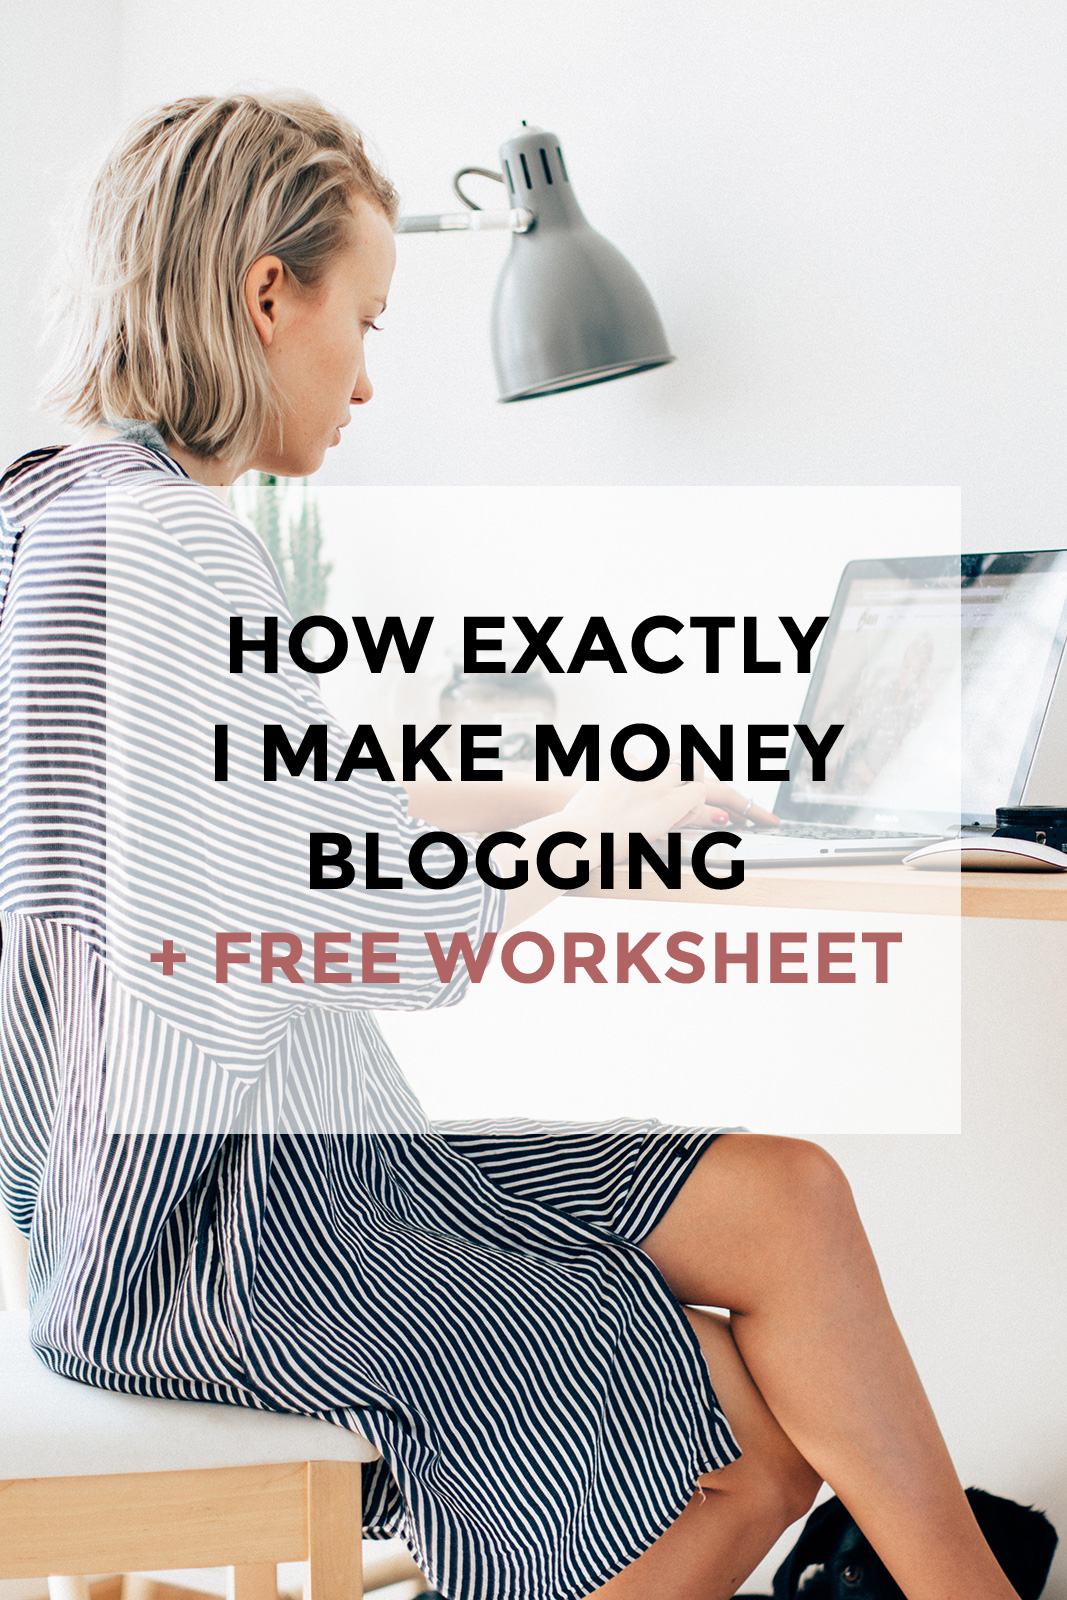 How Exactly I Make Money Blogging Free Worksheet